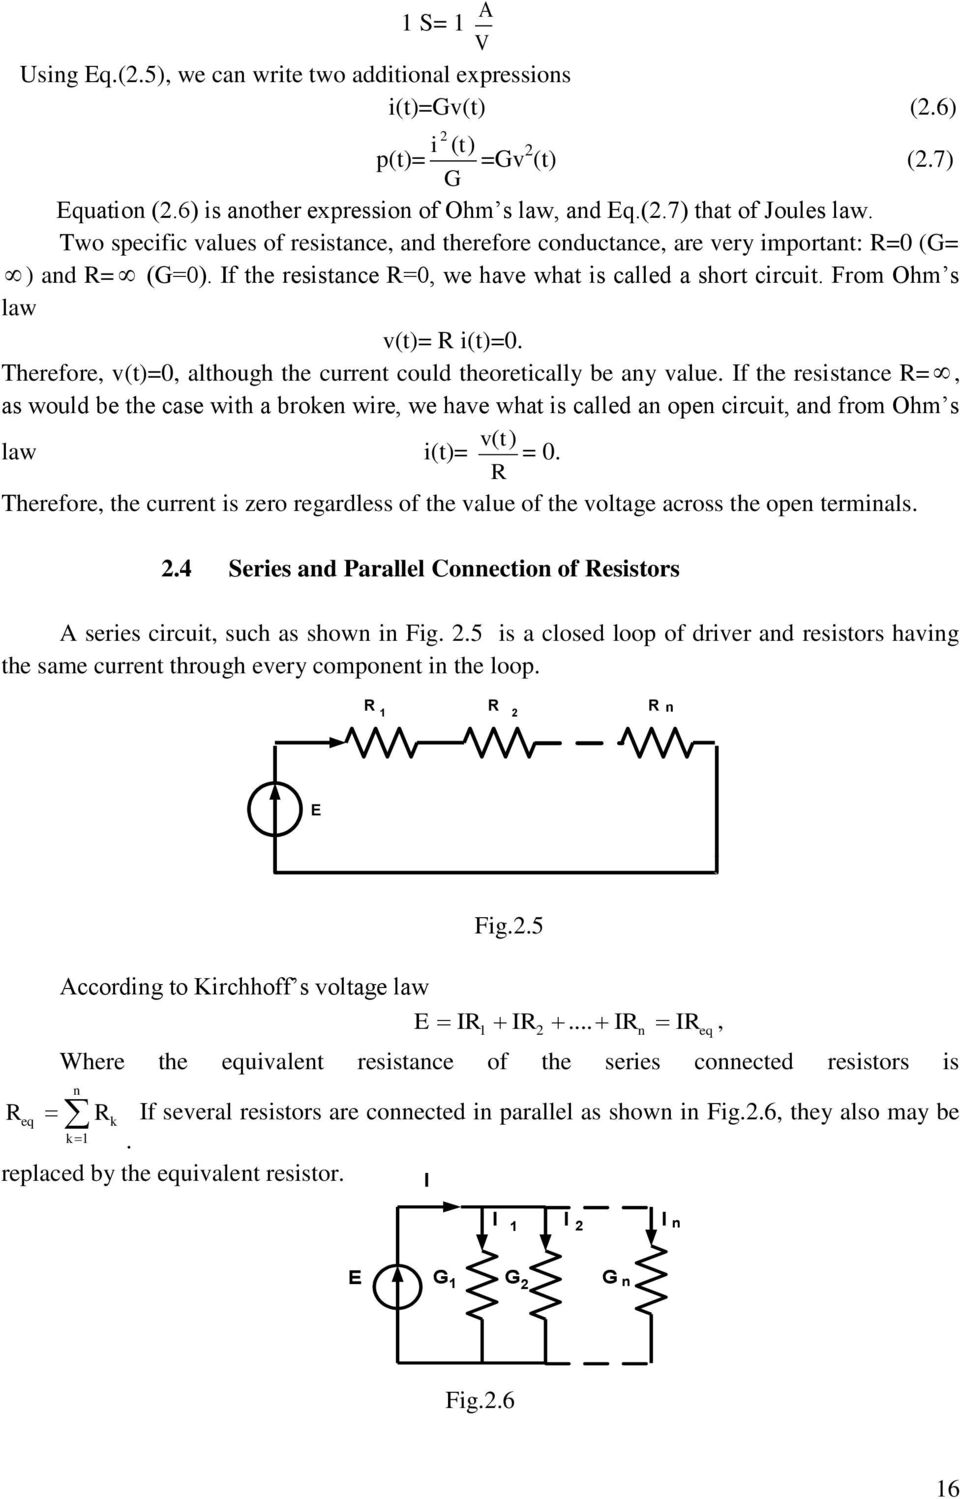 Simon Nemsadze Basic Electrical Engineering Theory And Practice Pdf Resistors How To Measure Current Practically In A Circuit Therefore Vt0 Although The Could Theoretically Be Any